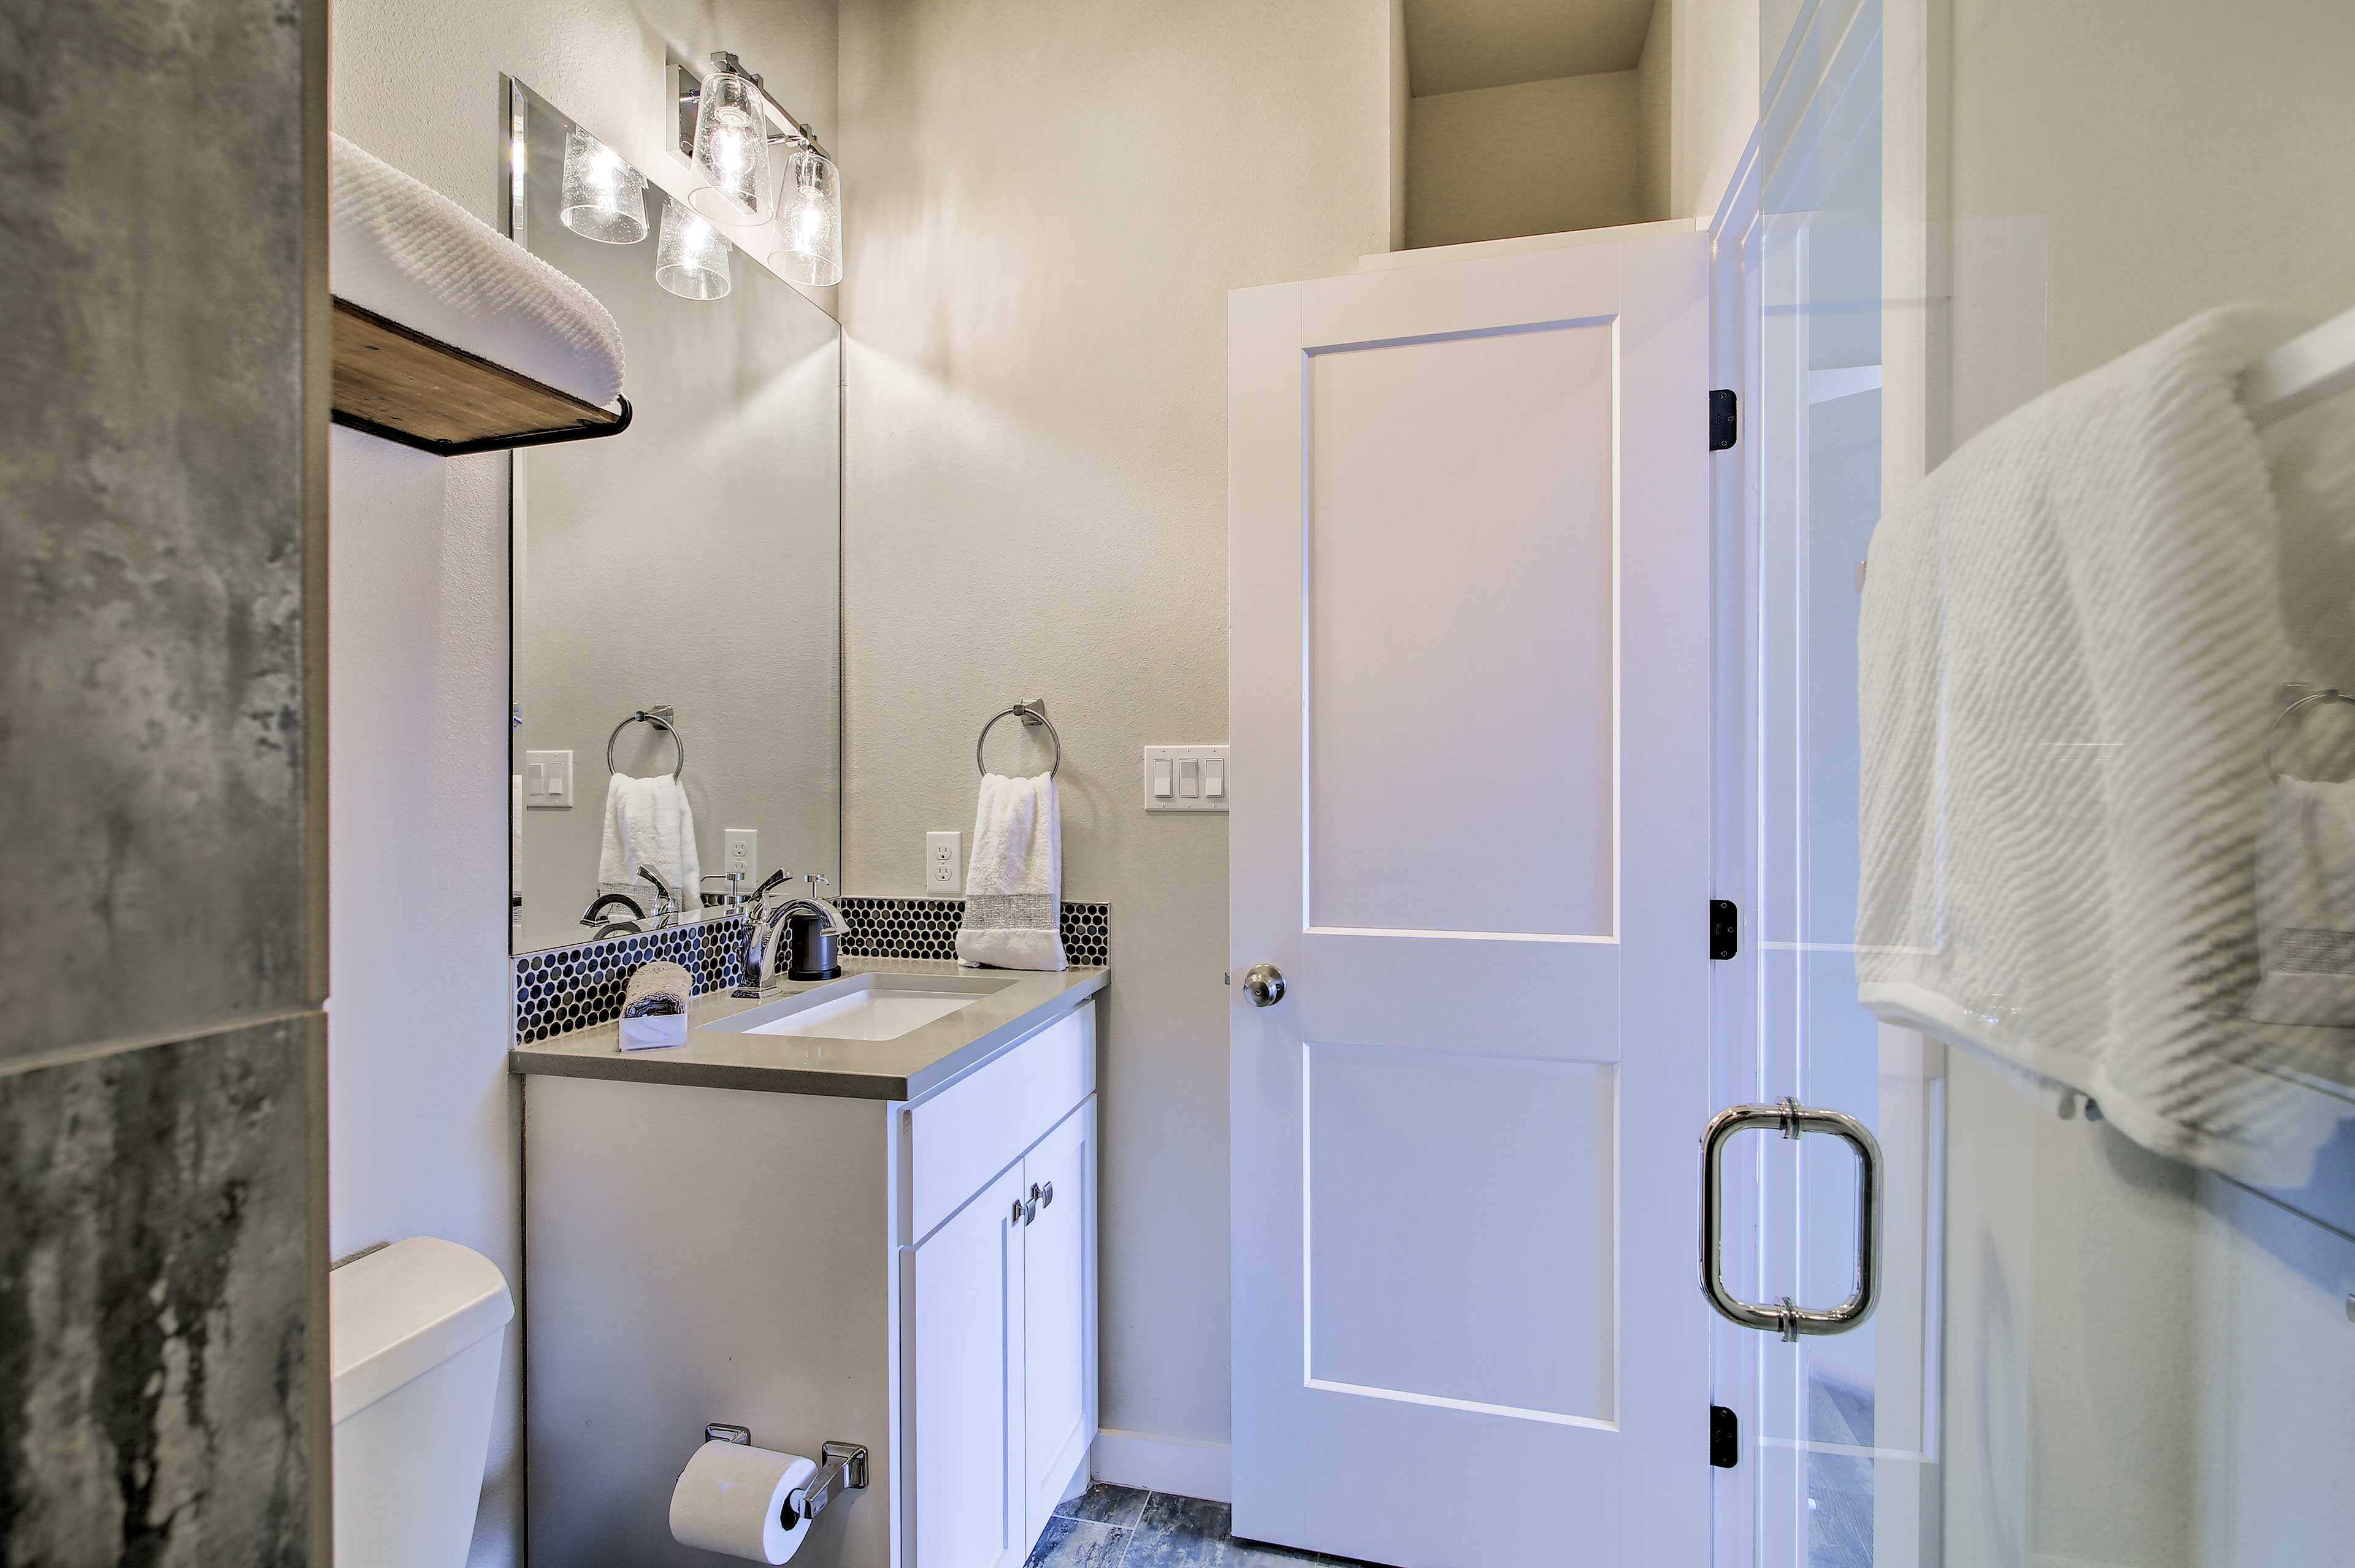 Rinse away the day in the tile-lined stand-up shower.